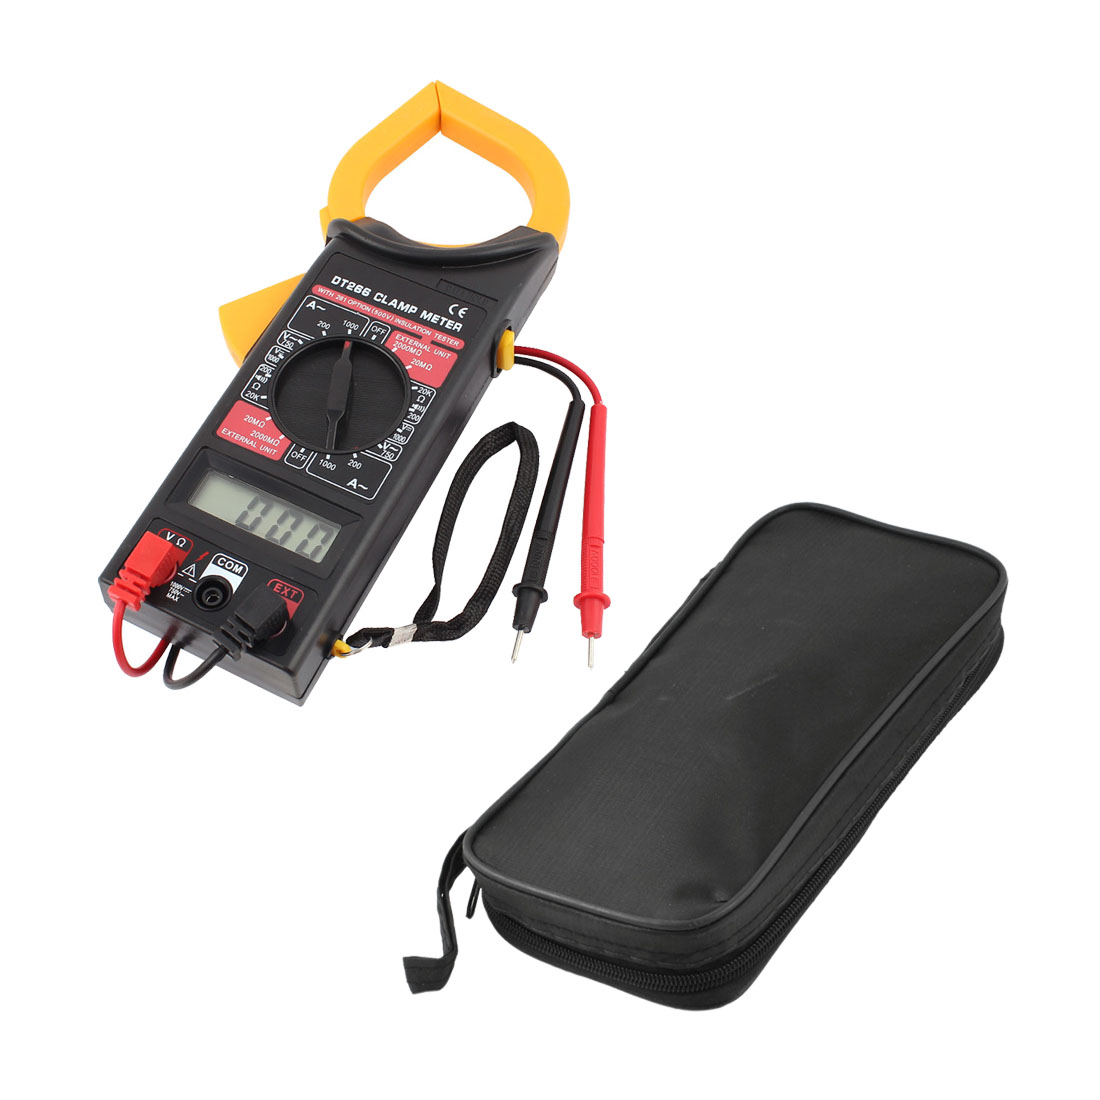 AC DC Voltage Ampere Resistance Test LCD Digital Analogue Clamp Meter Multimeter w Testing Lead